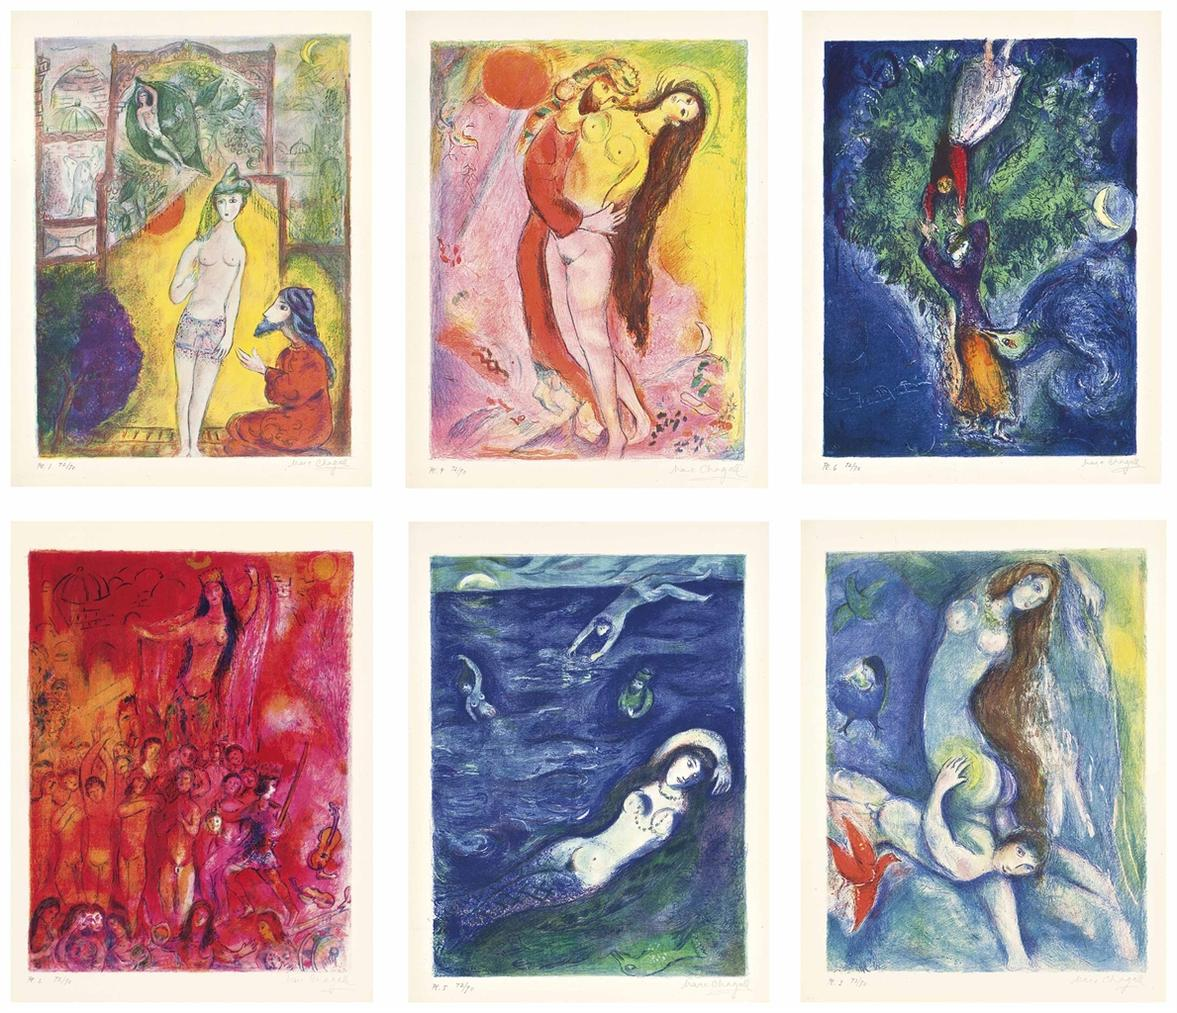 Marc Chagall-Four Tales From Arabian Nights, Pantheon Books, New York-1948